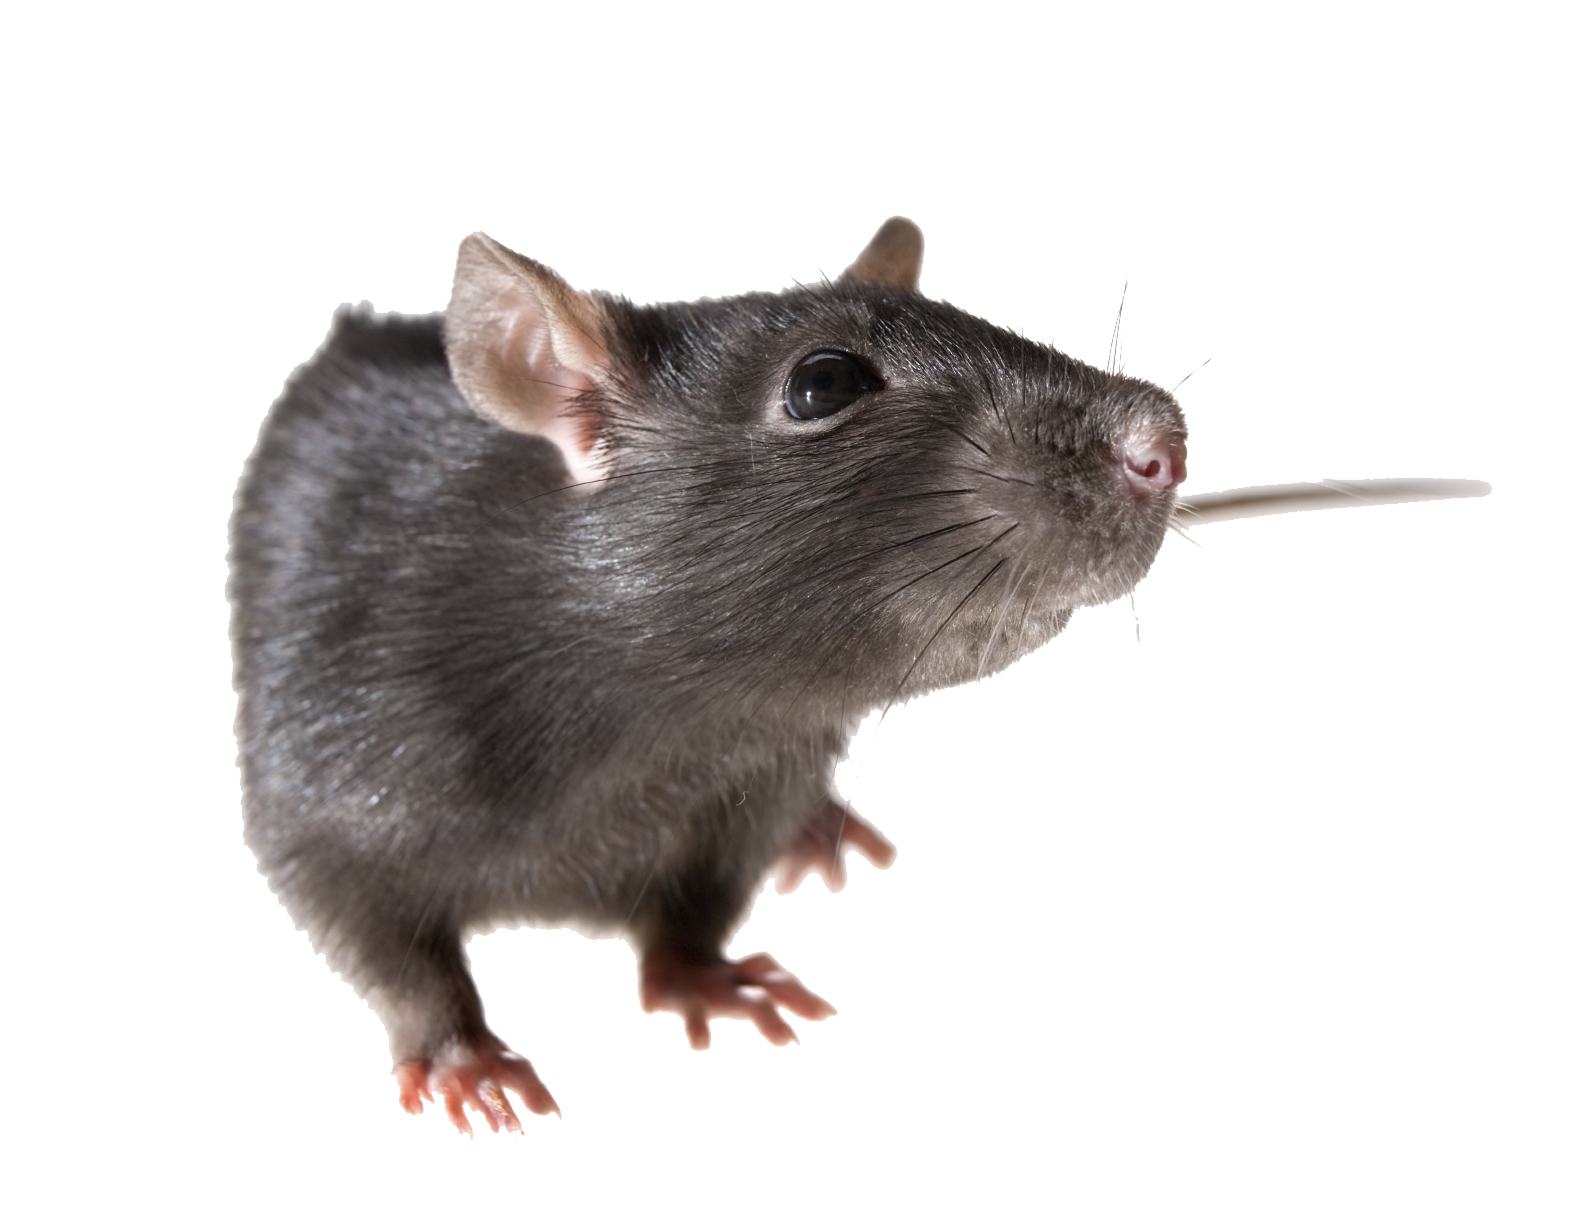 PNG File Name: Rat PNG Pic Dimension: 1570x1223. Image Type: .png. Posted  on: Sep 14th, 2016. Category: Animals Tags: Rat - Rat PNG